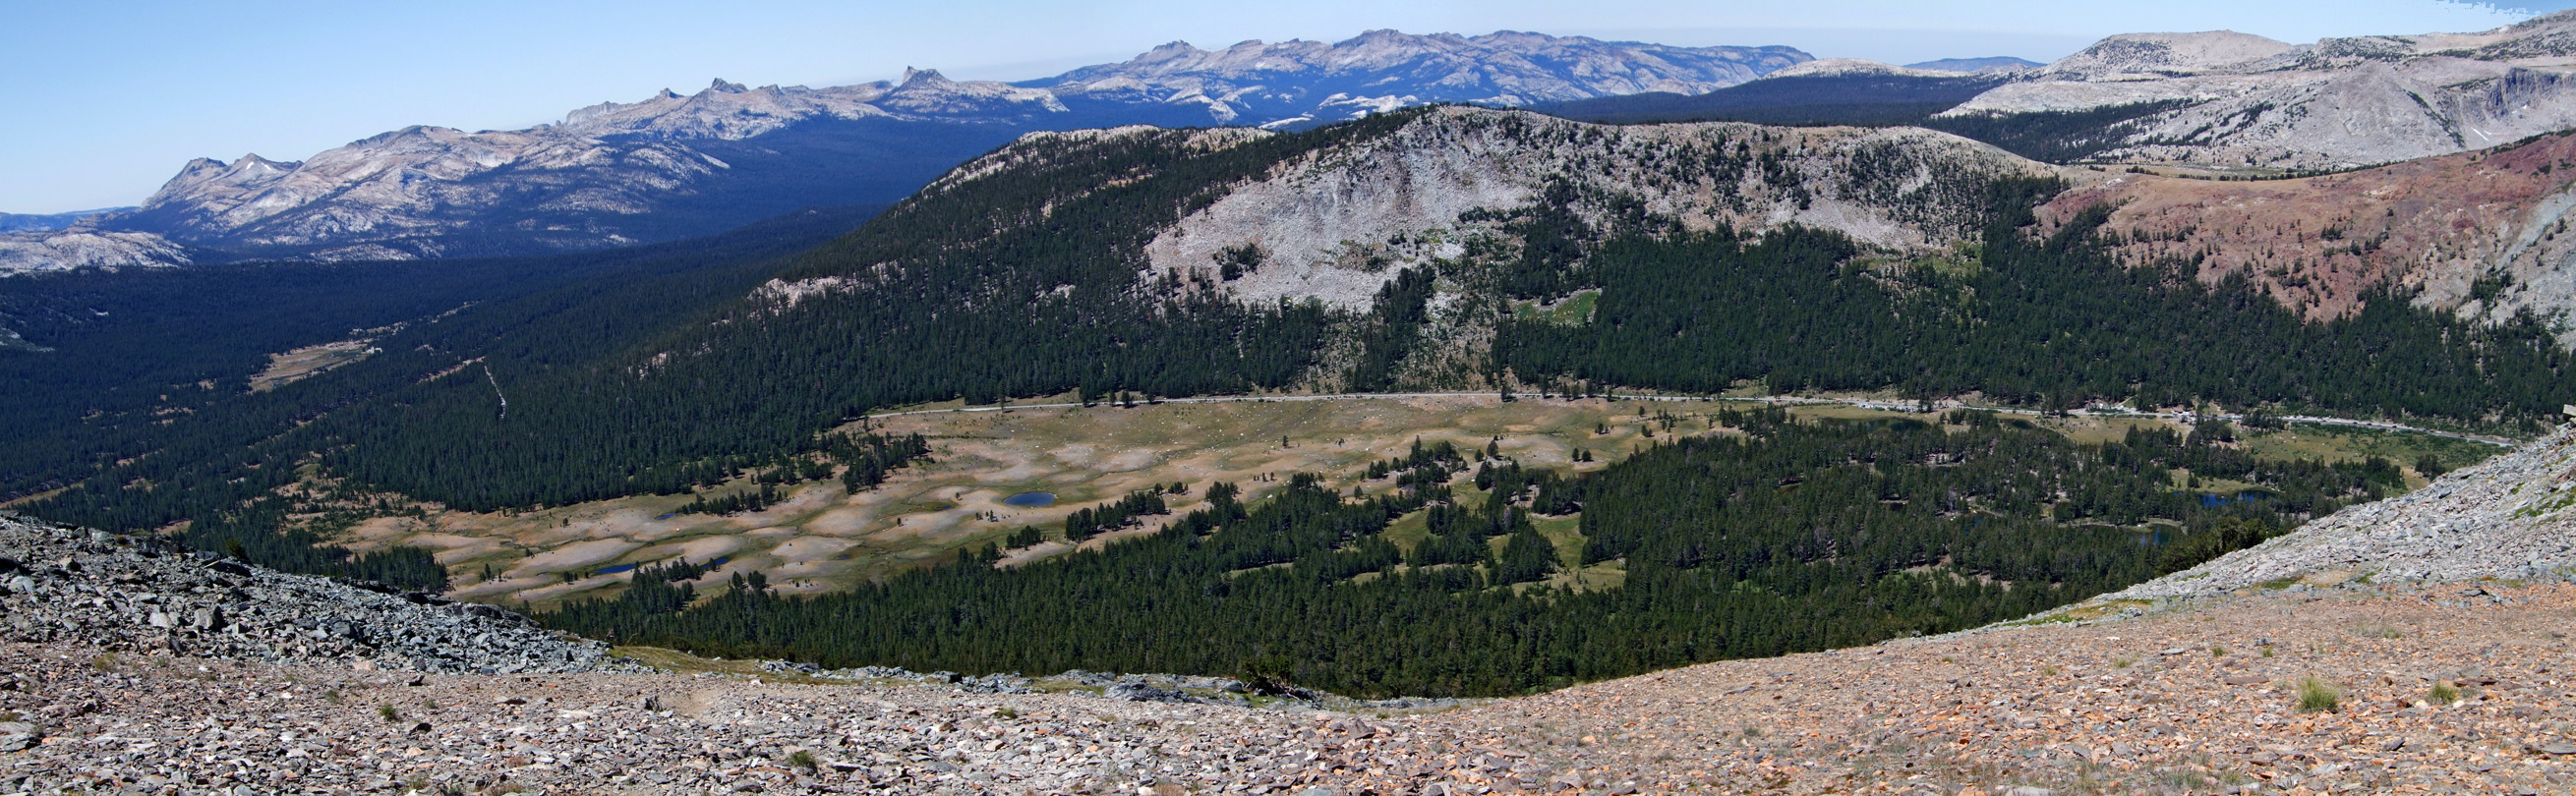 Tioga Road and Dana Meadows